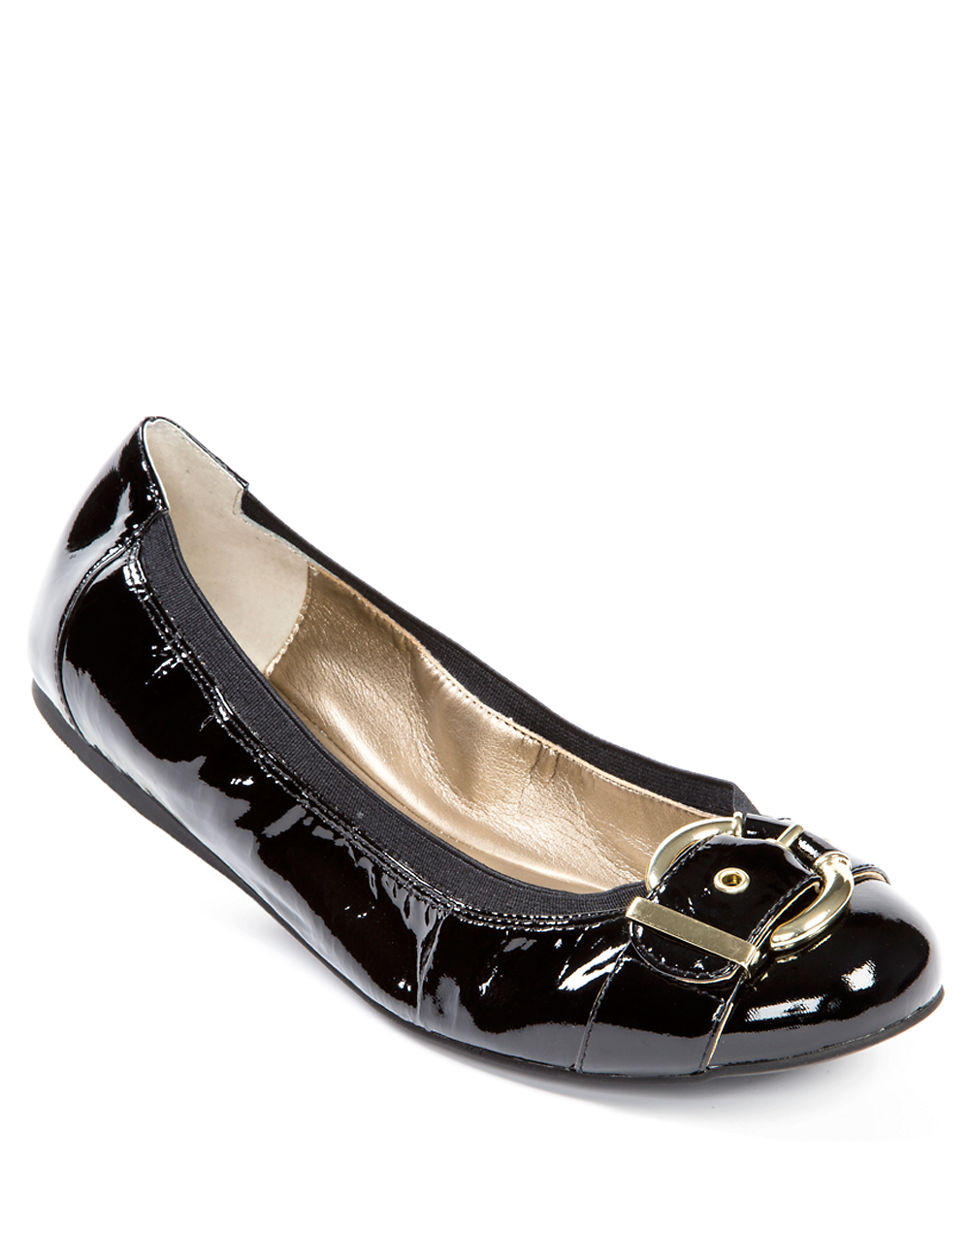 Naturalizer Patent Leather Shoes